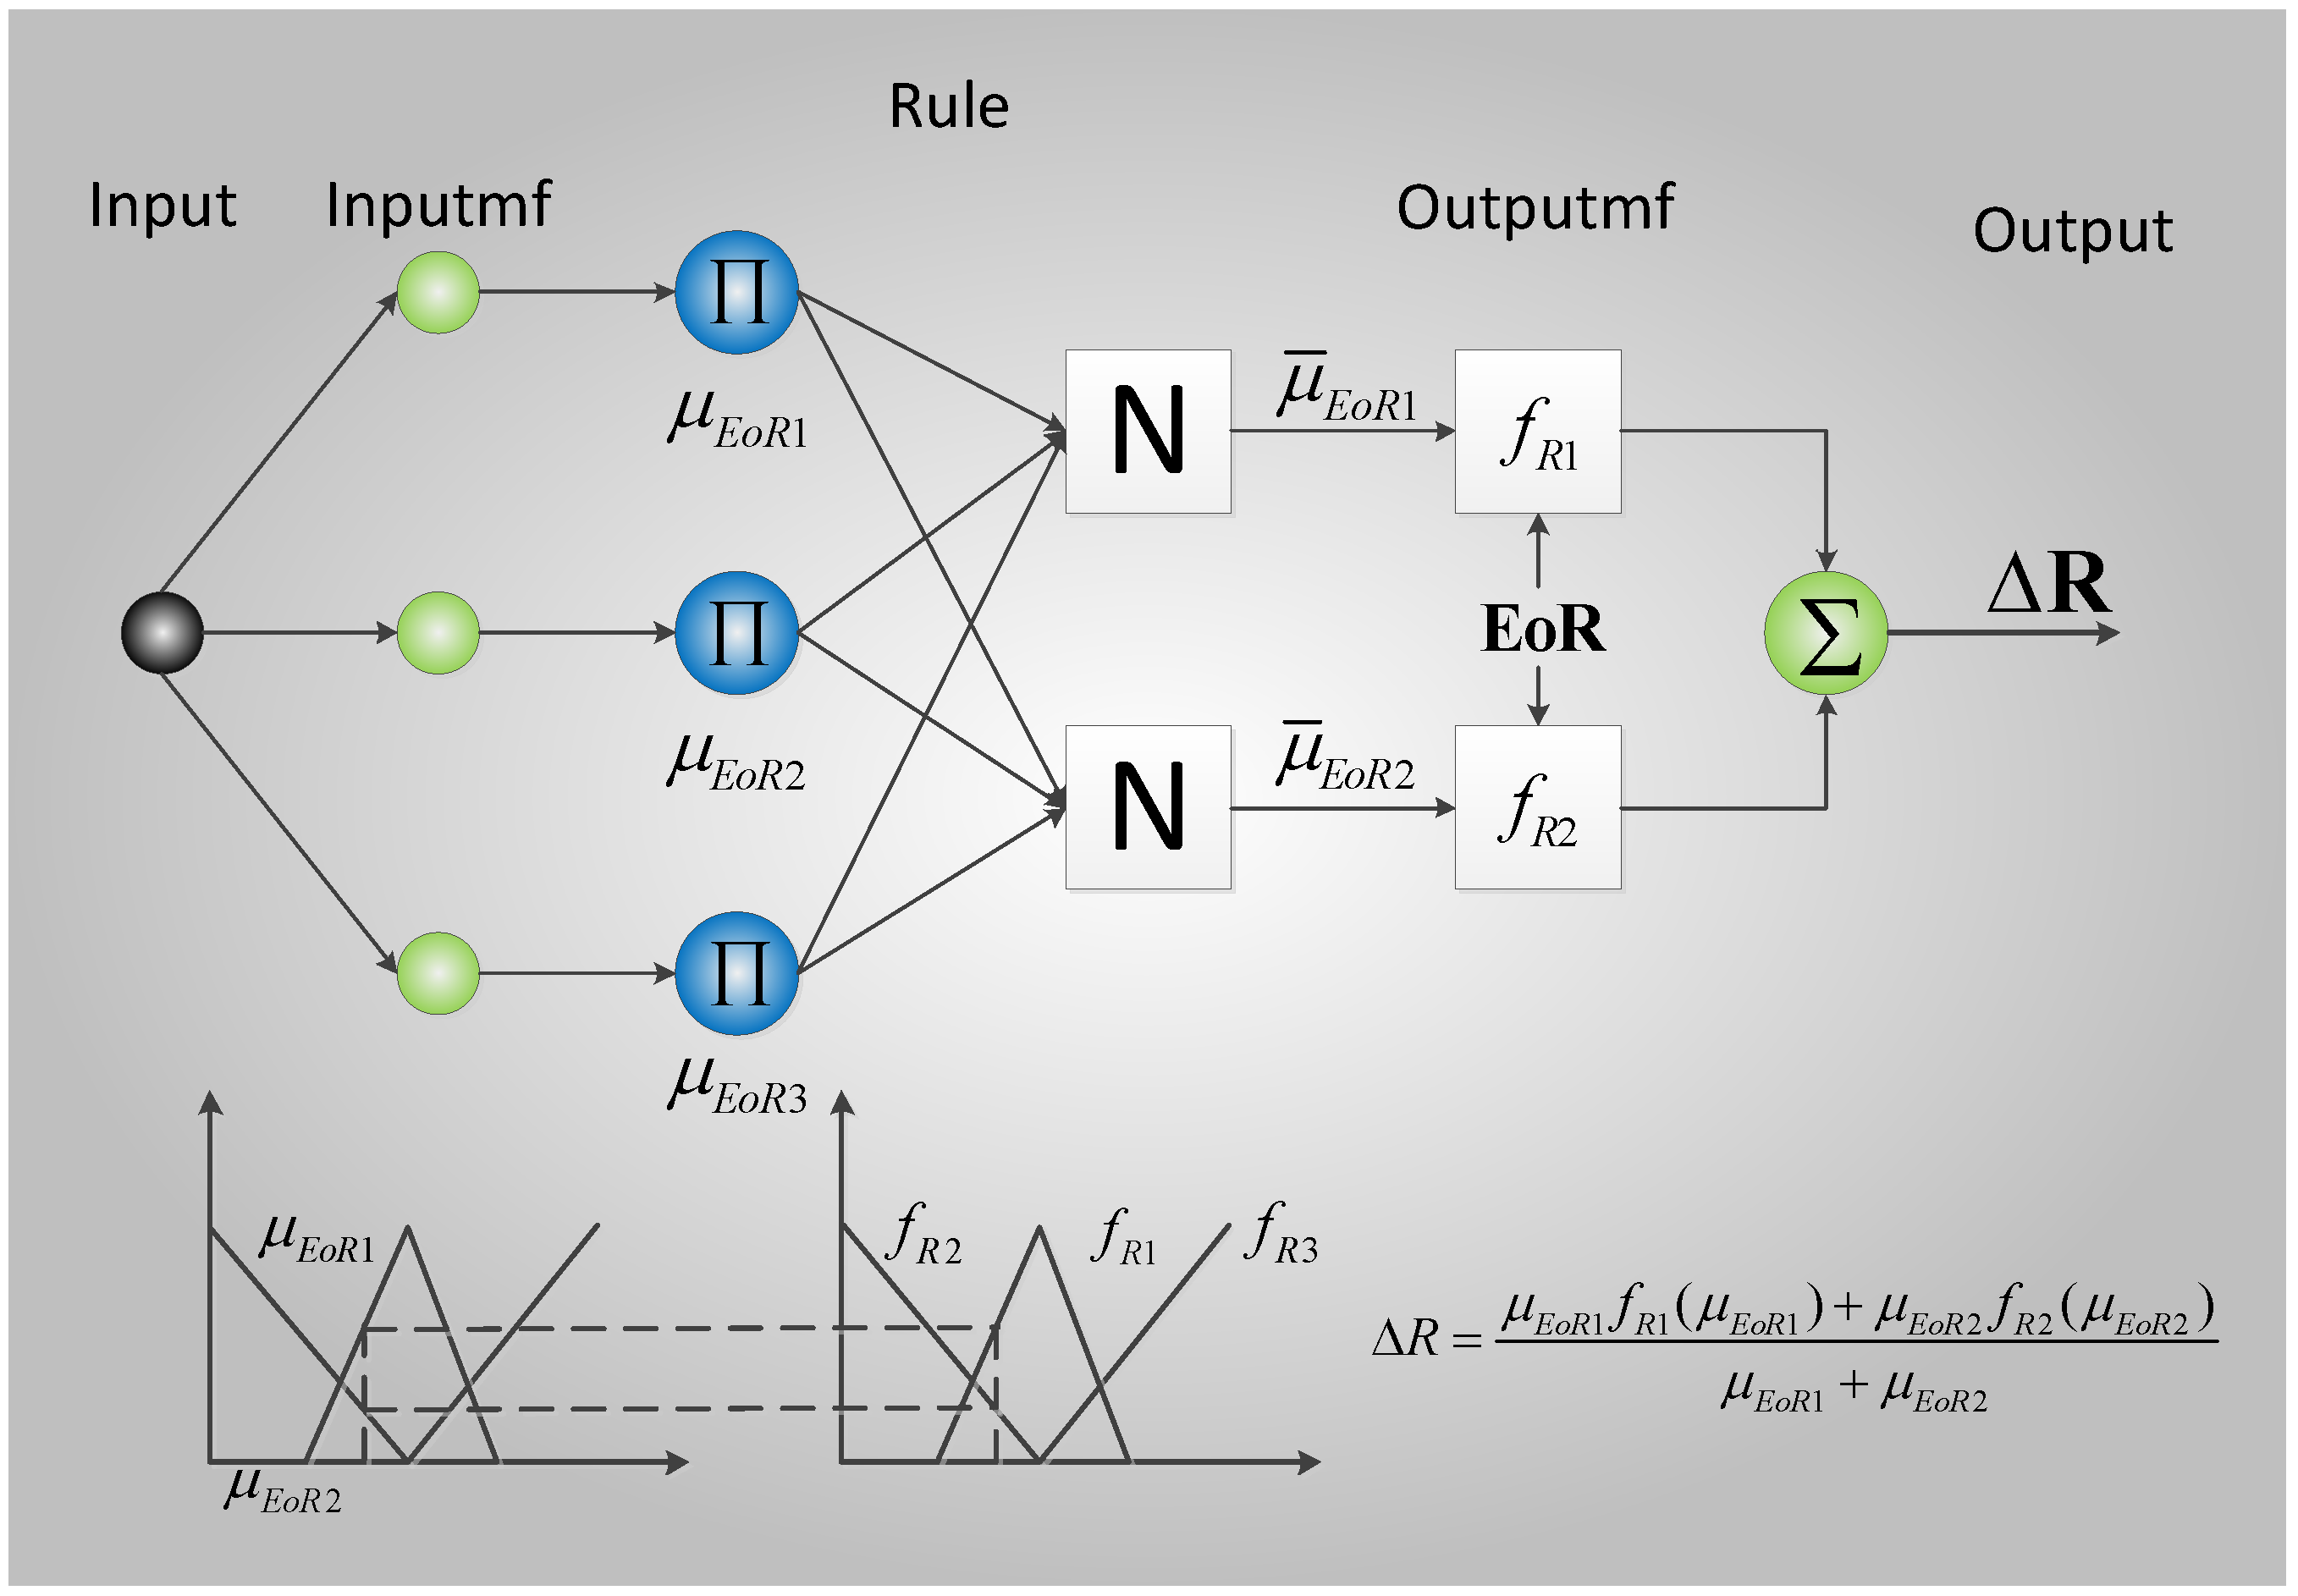 fuzzy neural network thesis Moreover, we provide introductions to neural networks, ge- neticalgorithms,expert and planningsystems, and intelligent autonomous control, and explain how these topics relate to fuzzy control.